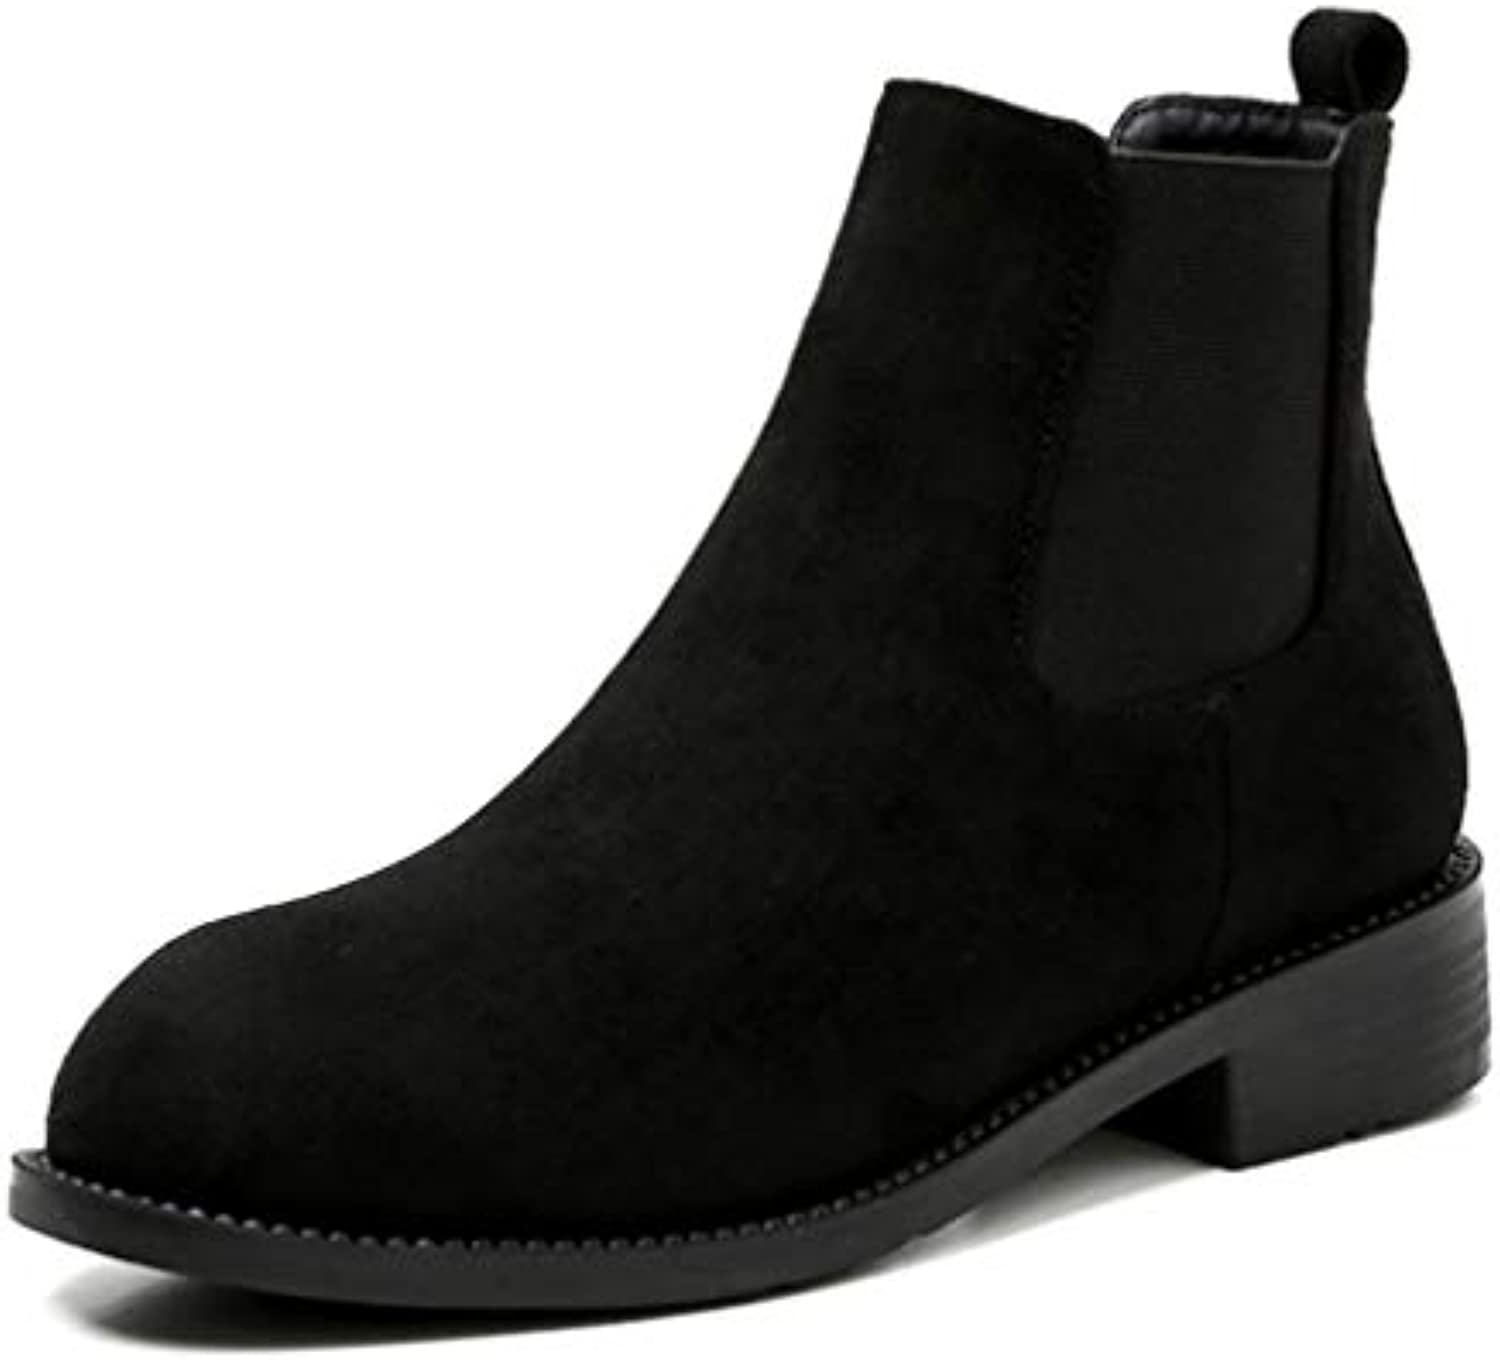 T-JULY Women Spring Chelsea Boots Square Heels Autumn Ankle Boots Female Slip On Suede shoes Ladies Casual shoes